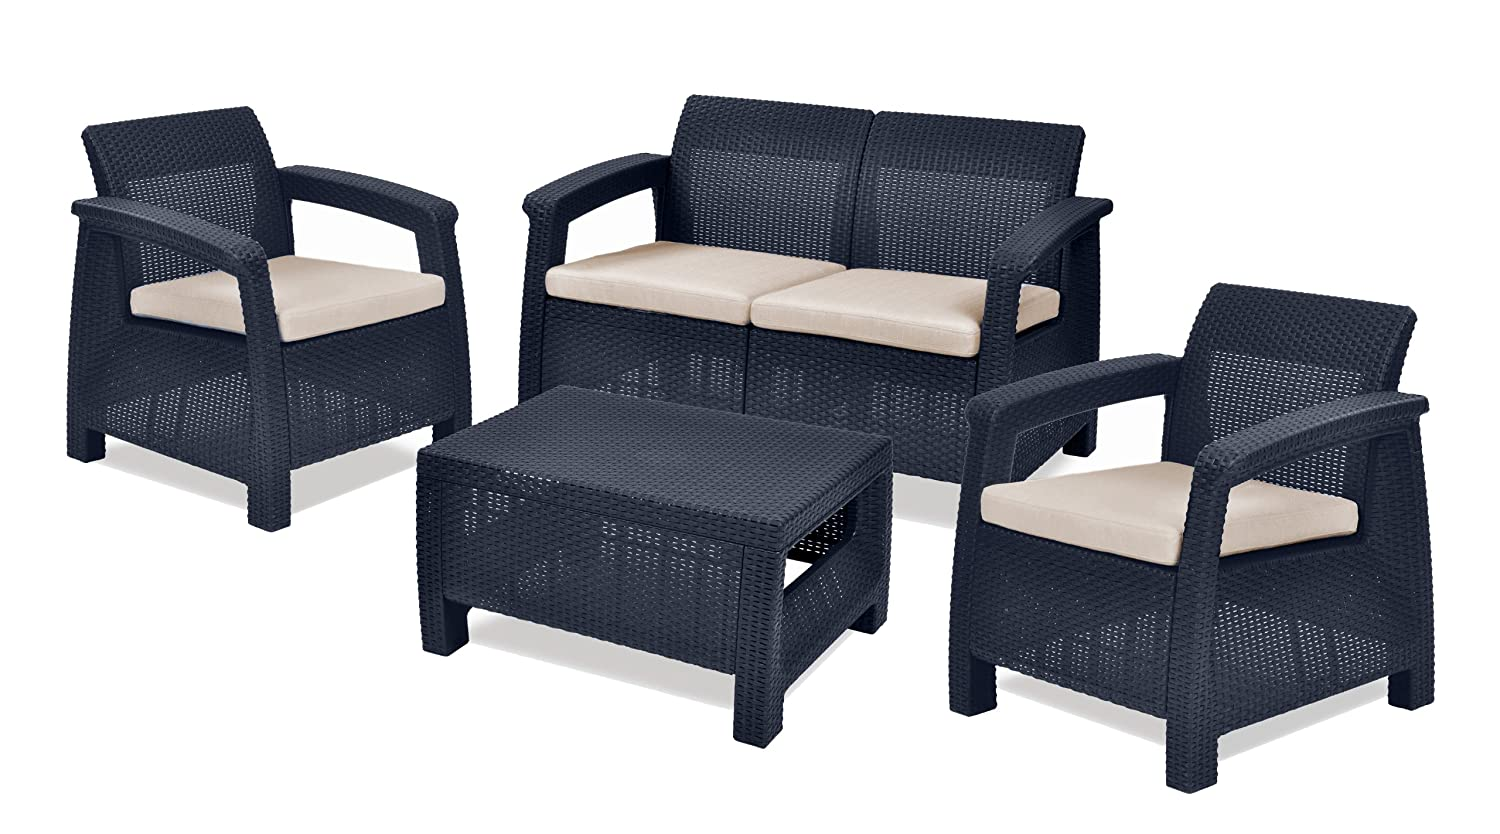 woven plastic garden chairs chair to bed furniture 4 pcs set keter corfu with table